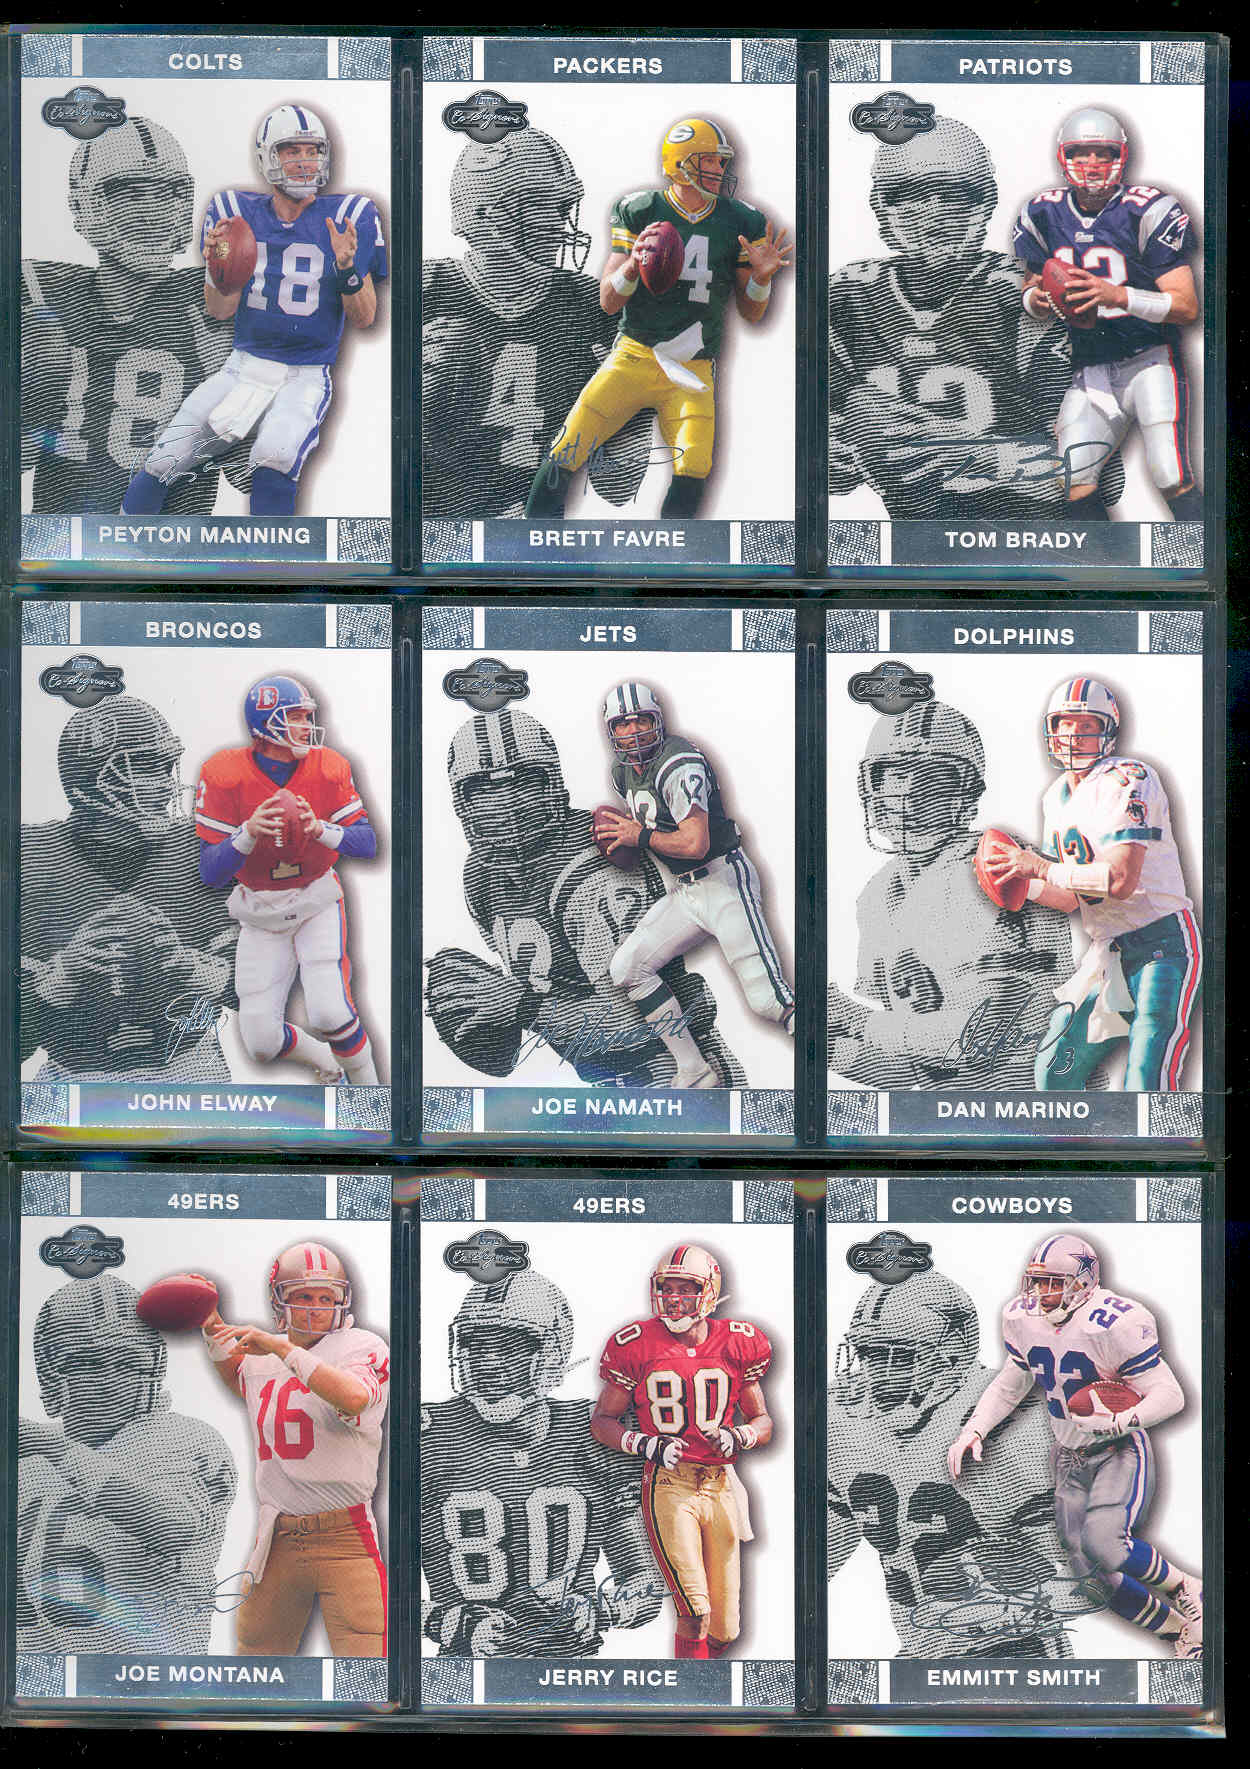 2007 Topps Co-signers Set 1-50 w/ Peyton Manning Brett Favre Tom Brady John Elway Joe Namath Dan Marino Jerry Rice Emmitt Smith Joe Montana Low Shipping Cost!